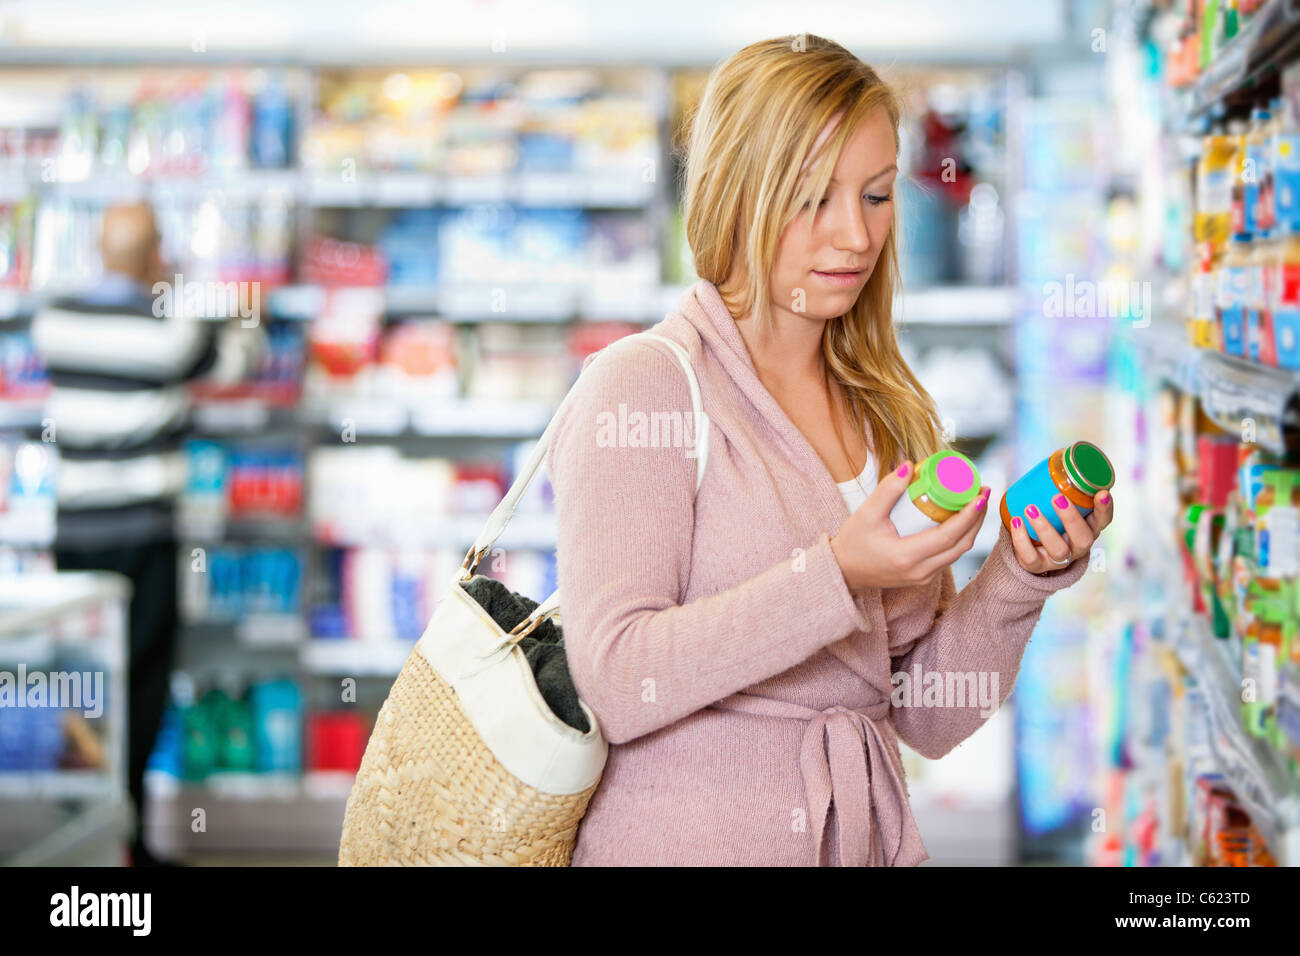 Young woman holding jar in the supermarket with people in the background - Stock Image